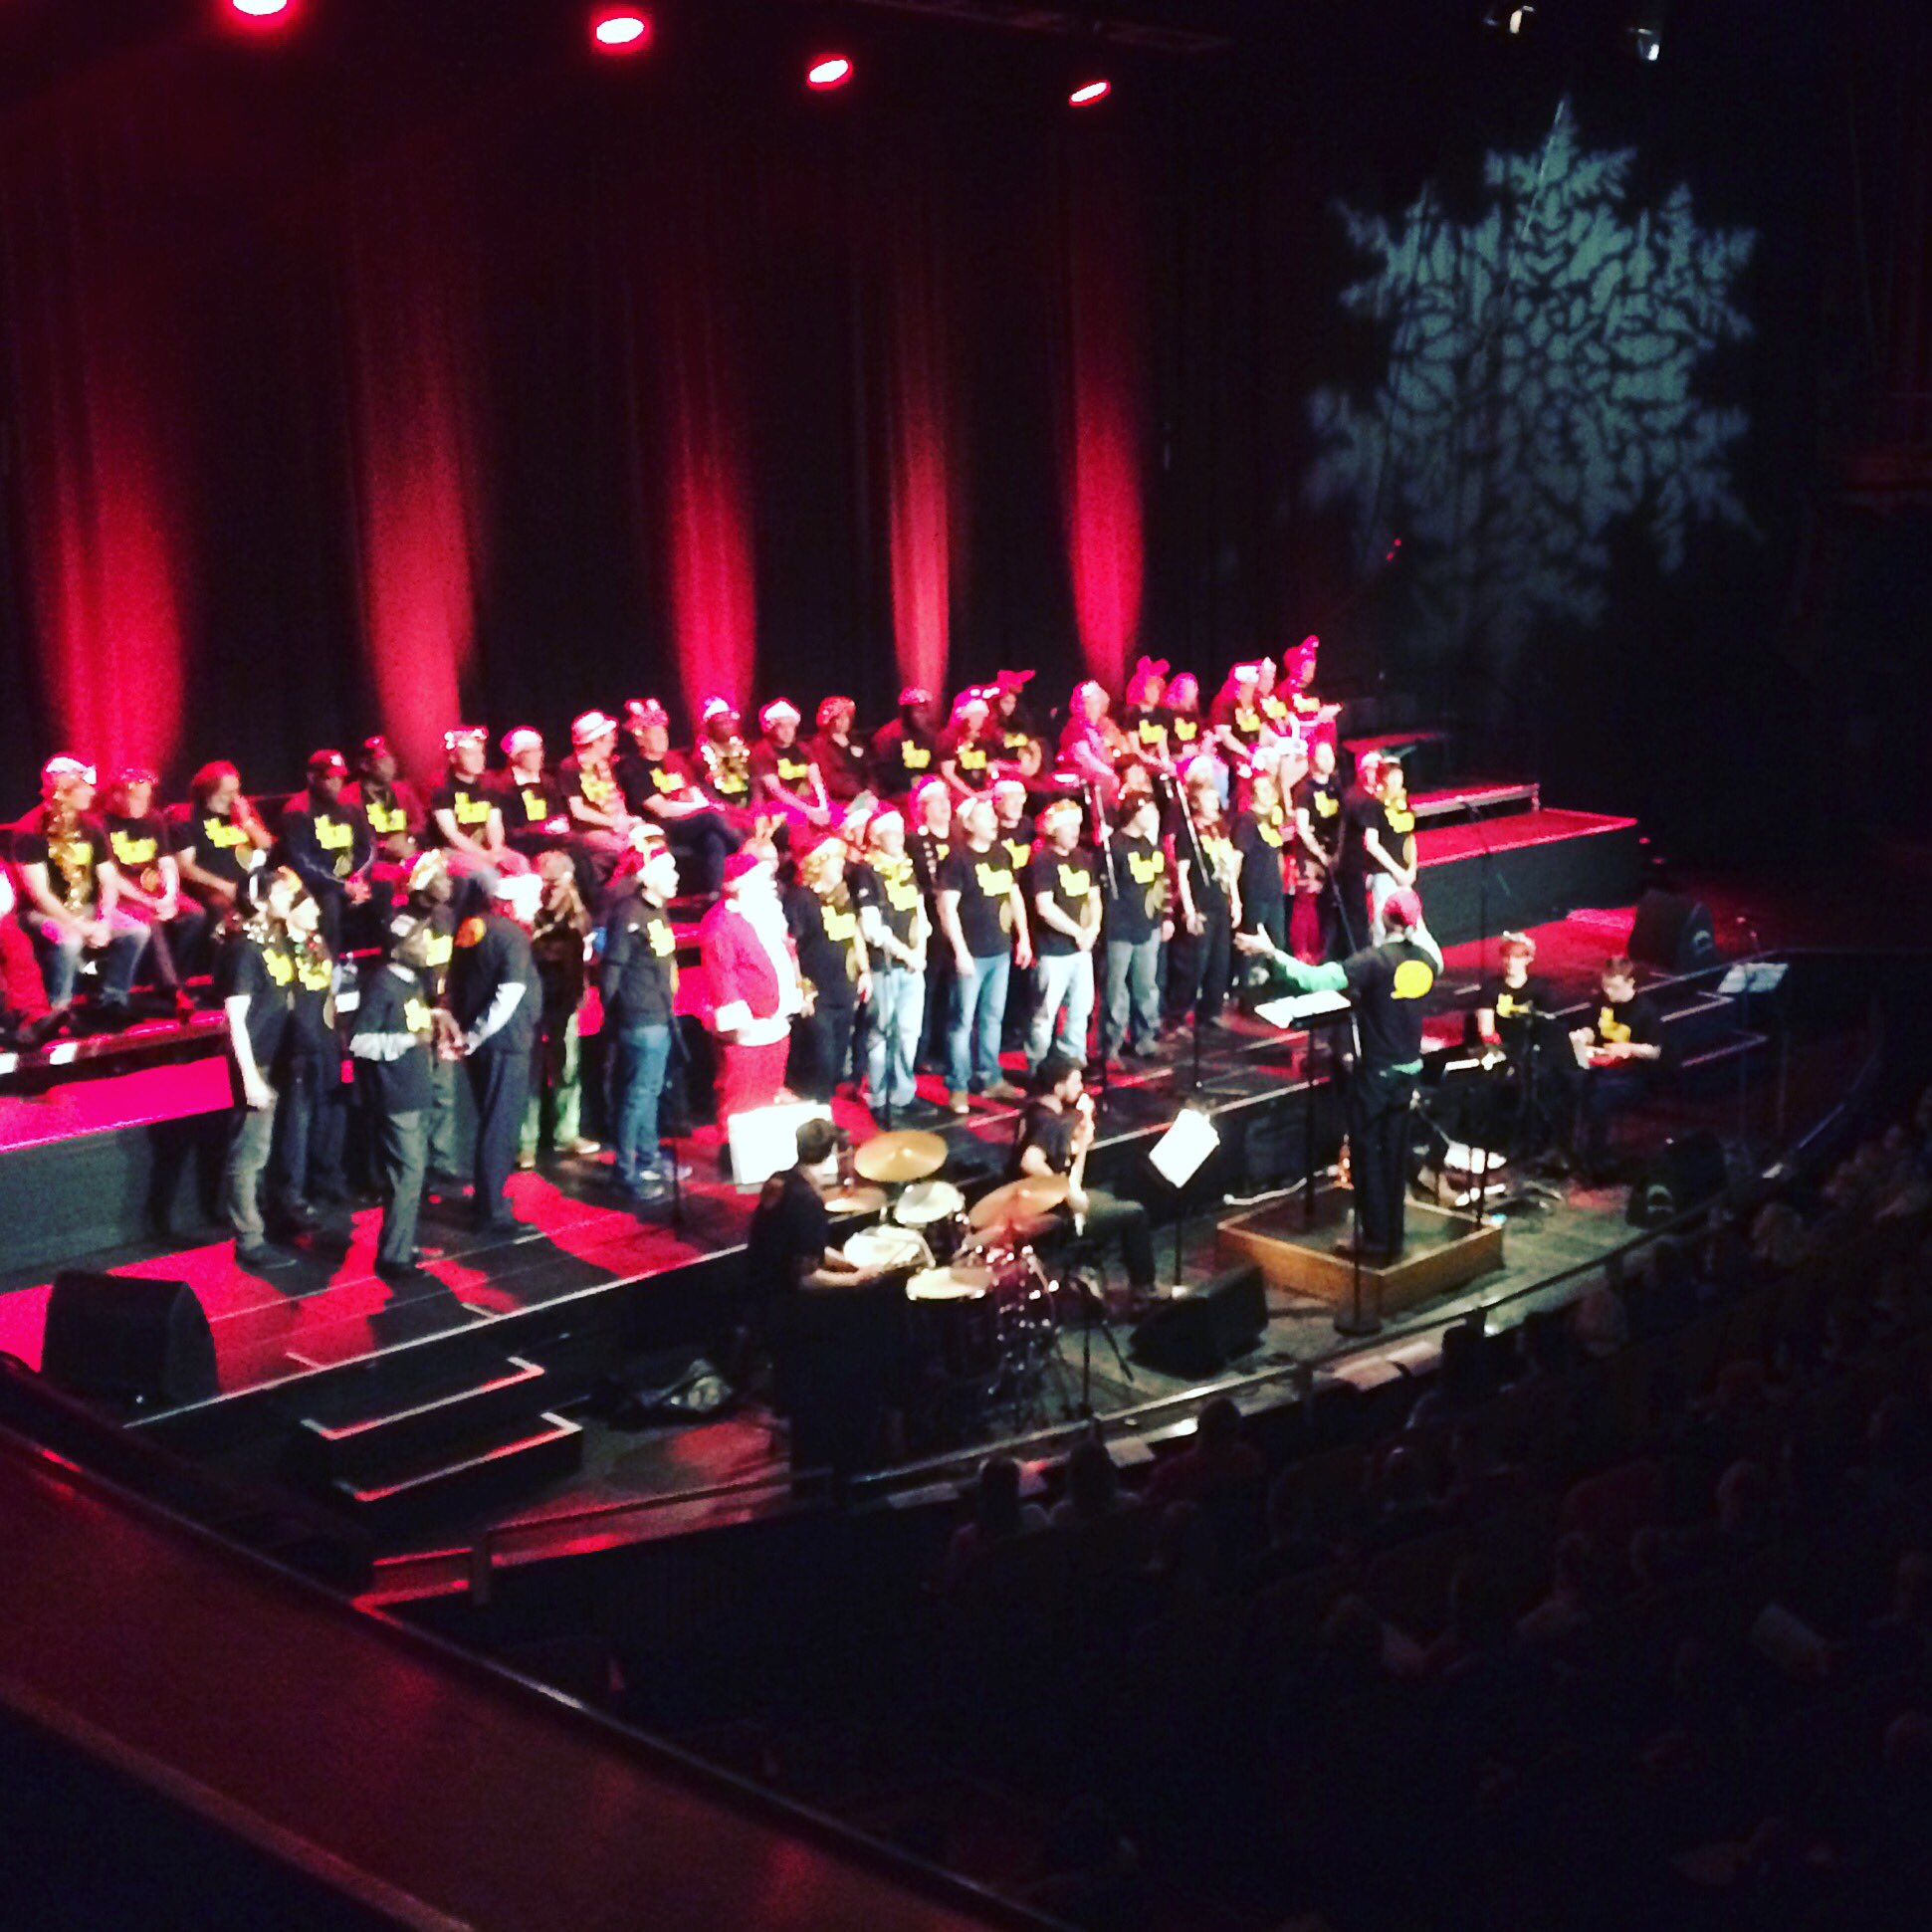 @ChoirwithNoName great gig last night #brighton Dome! Thanks for coming, see you next year? https://t.co/hl3kxtPGDF